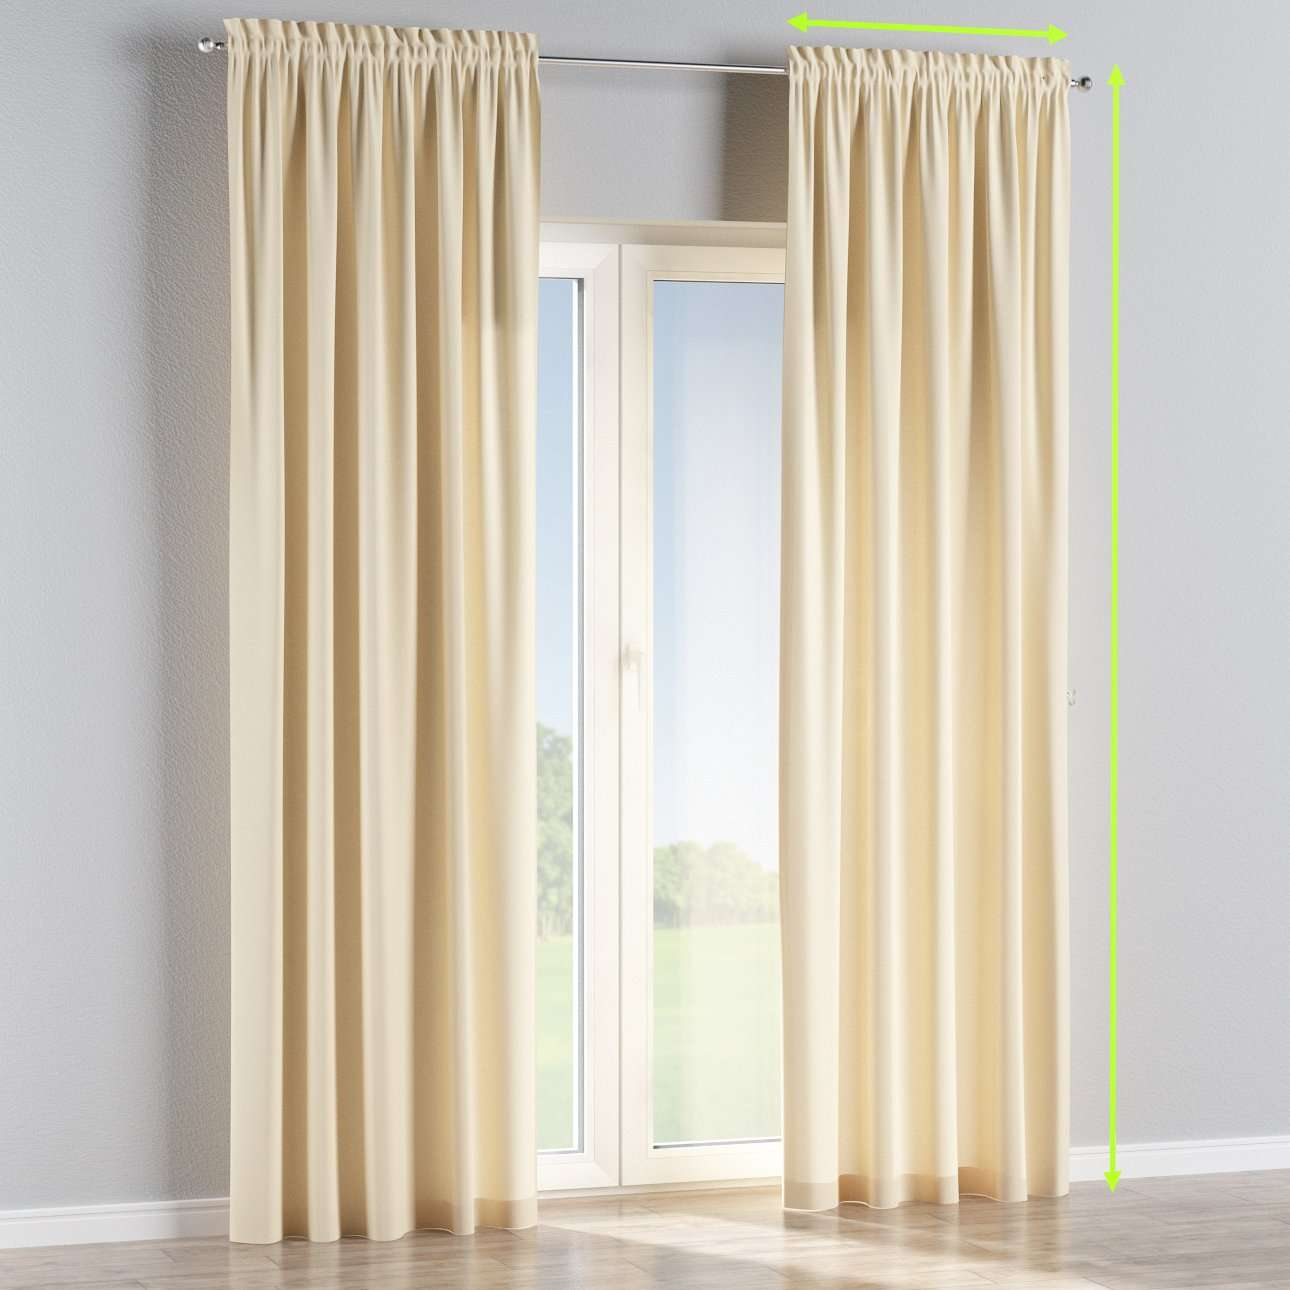 Slot and frill lined curtains in collection Panama Cotton, fabric: 702-29